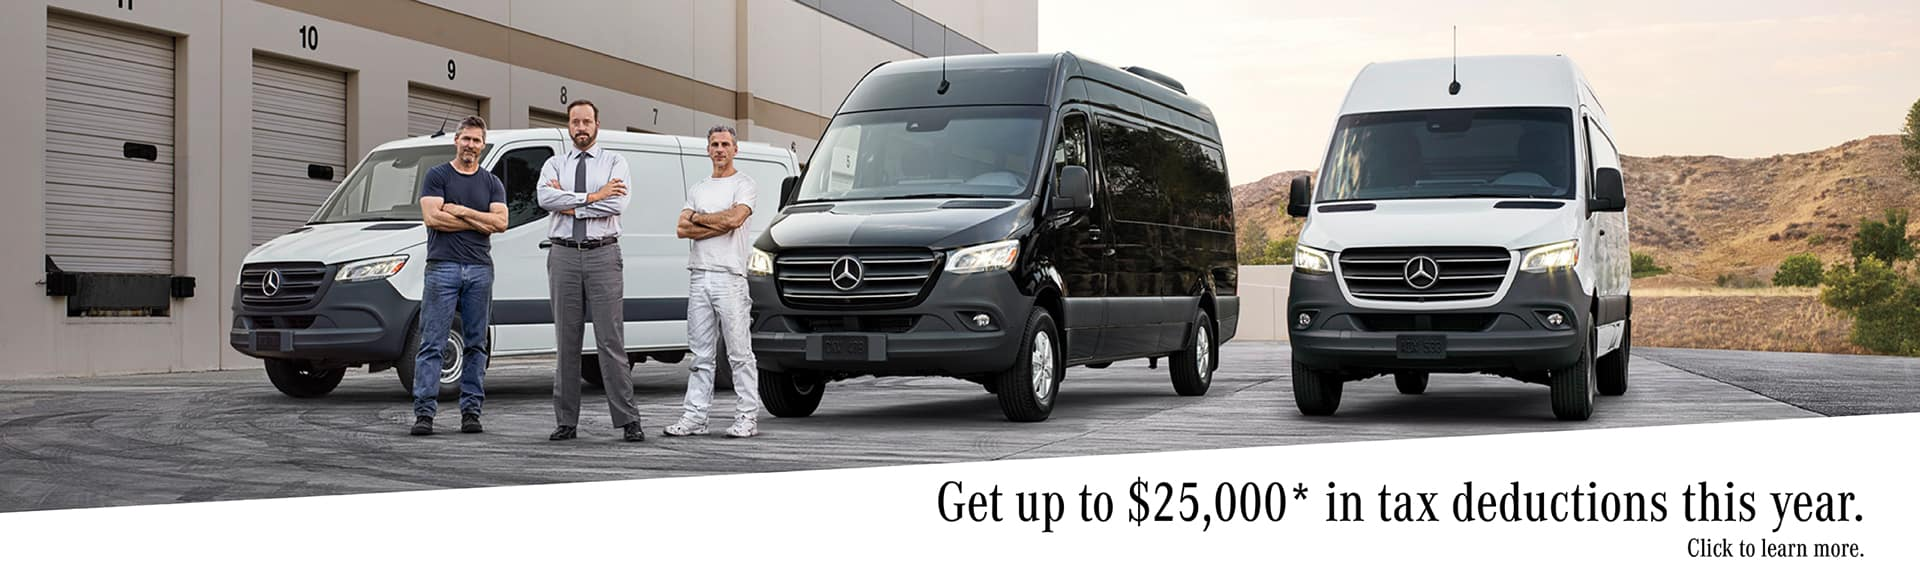 Mercedes-Benz Van Tax Deduction